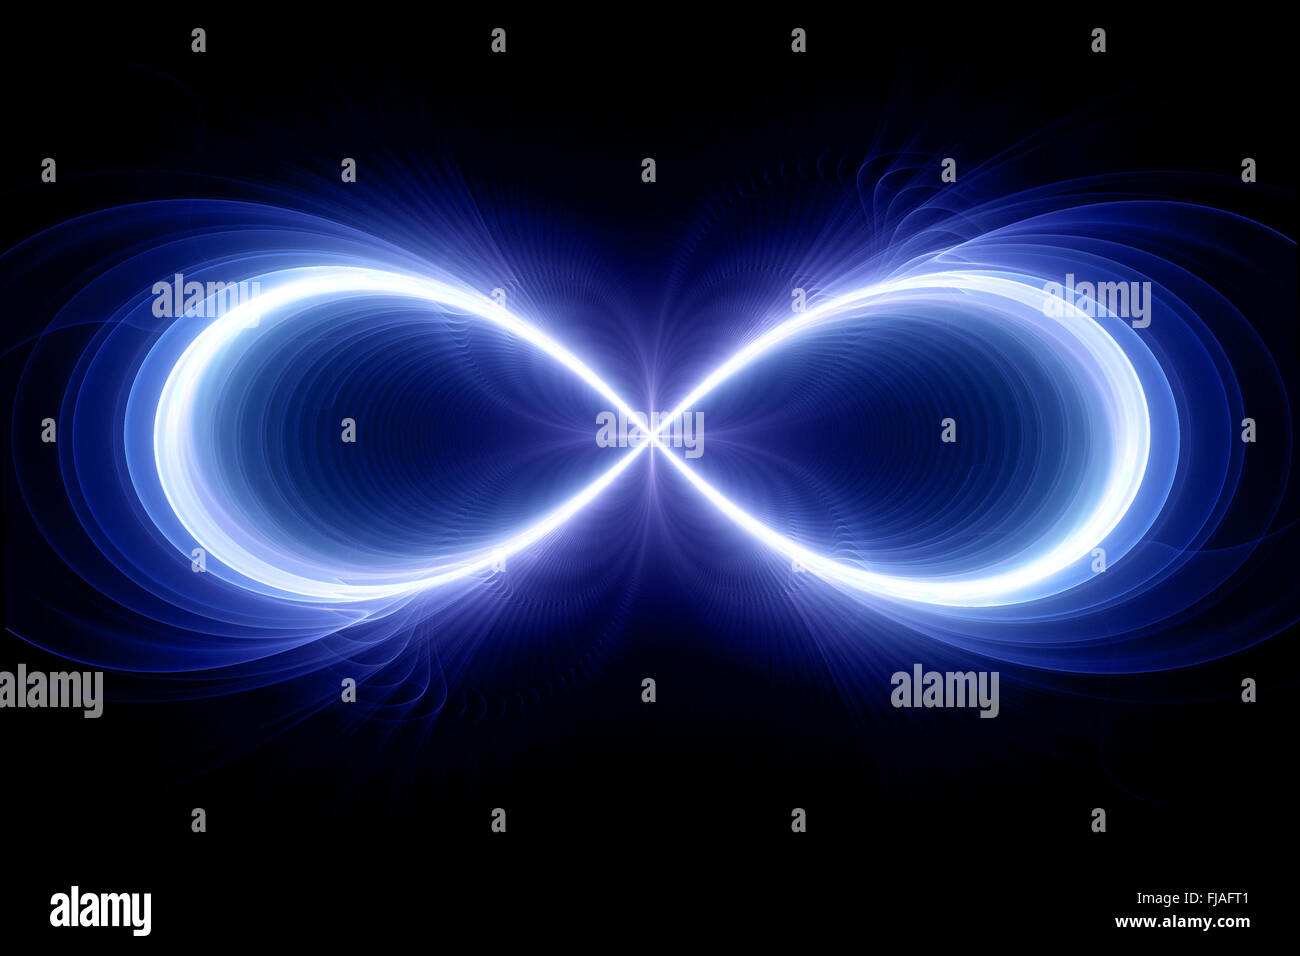 Infinity sign computer generated fractal background